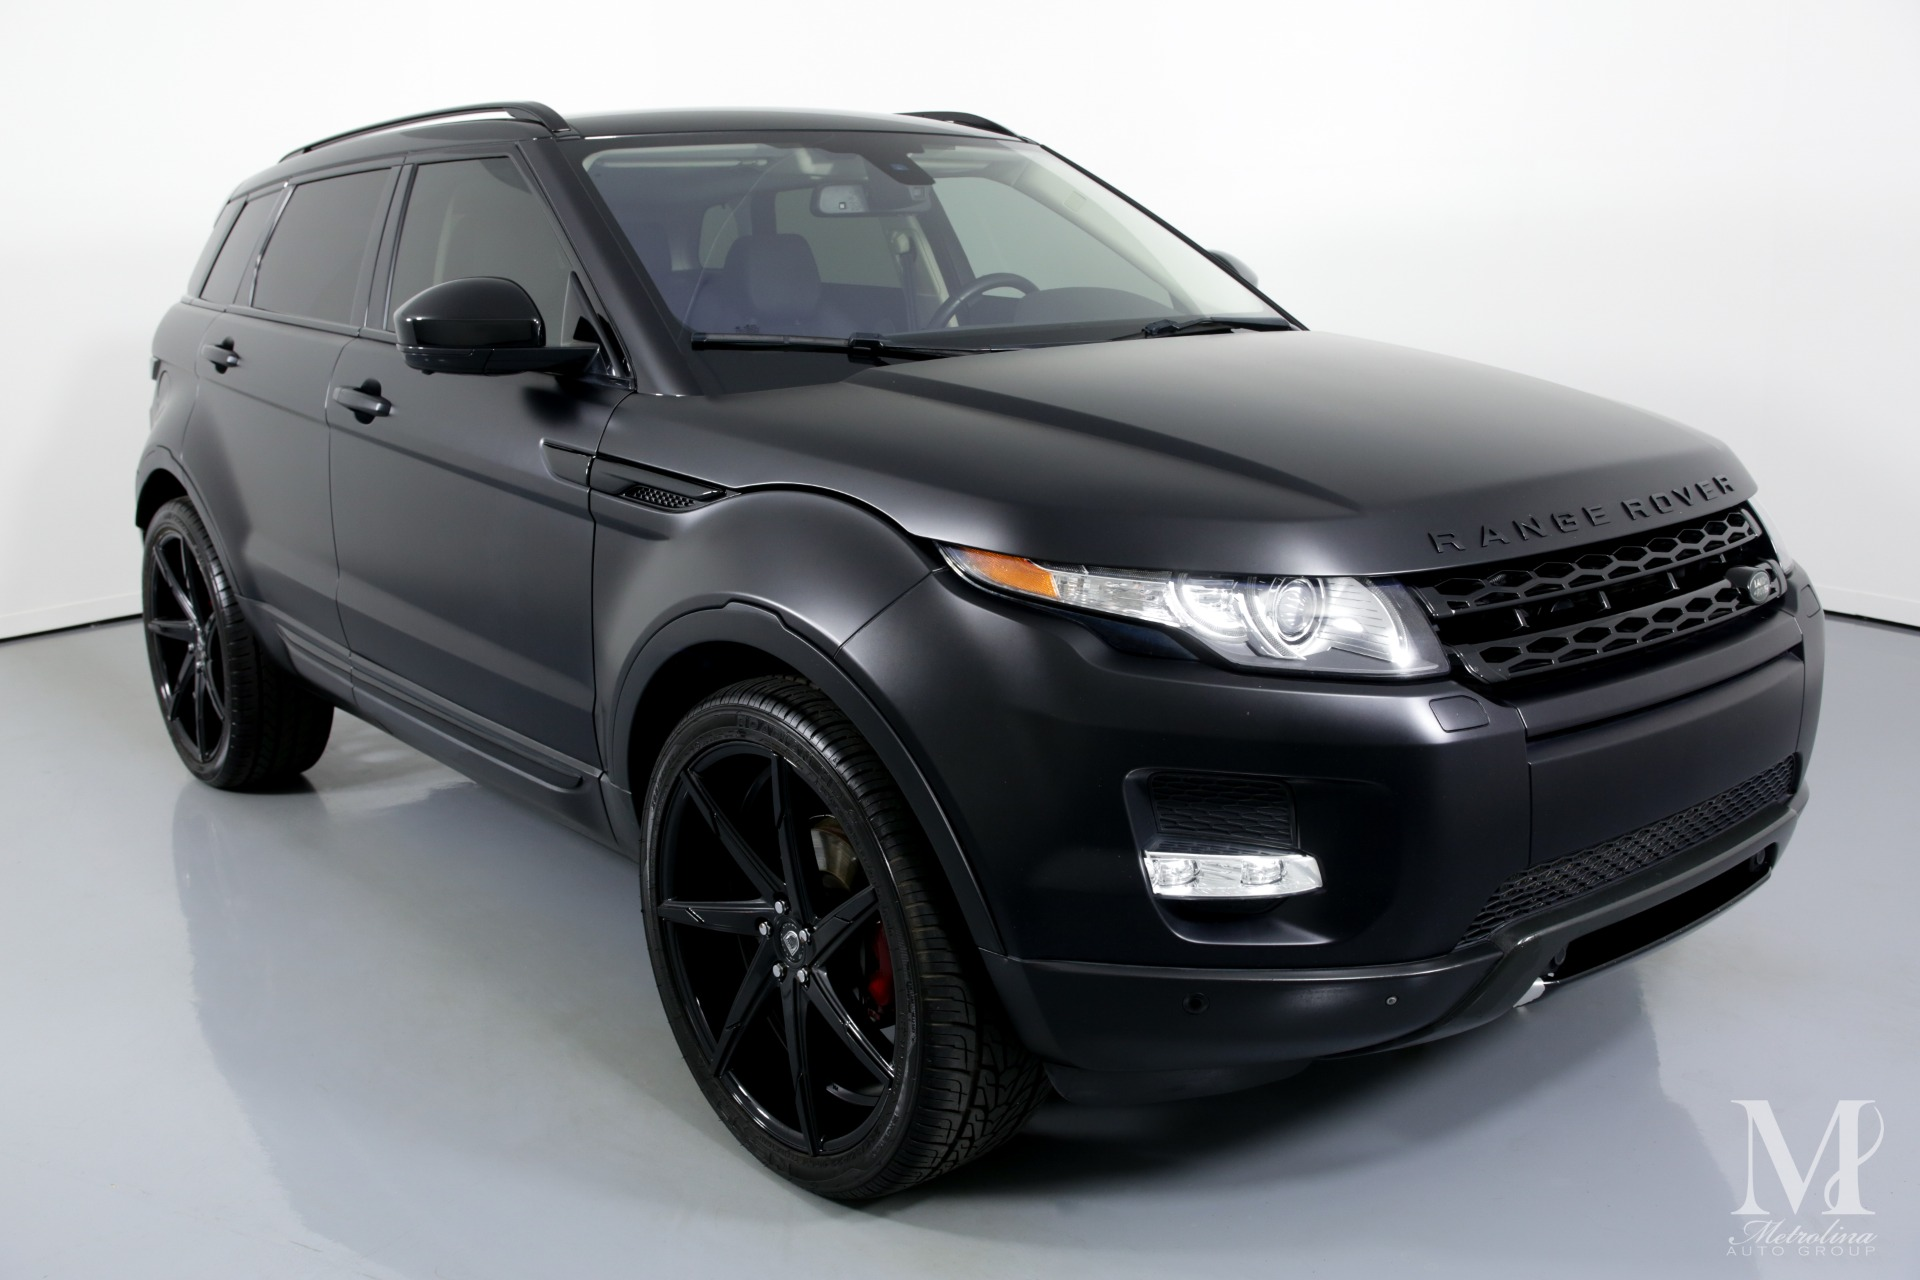 Used 2015 Land Rover Range Rover Evoque Pure Plus AWD 4dr SUV for sale $26,996 at Metrolina Auto Group in Charlotte NC 28217 - 2